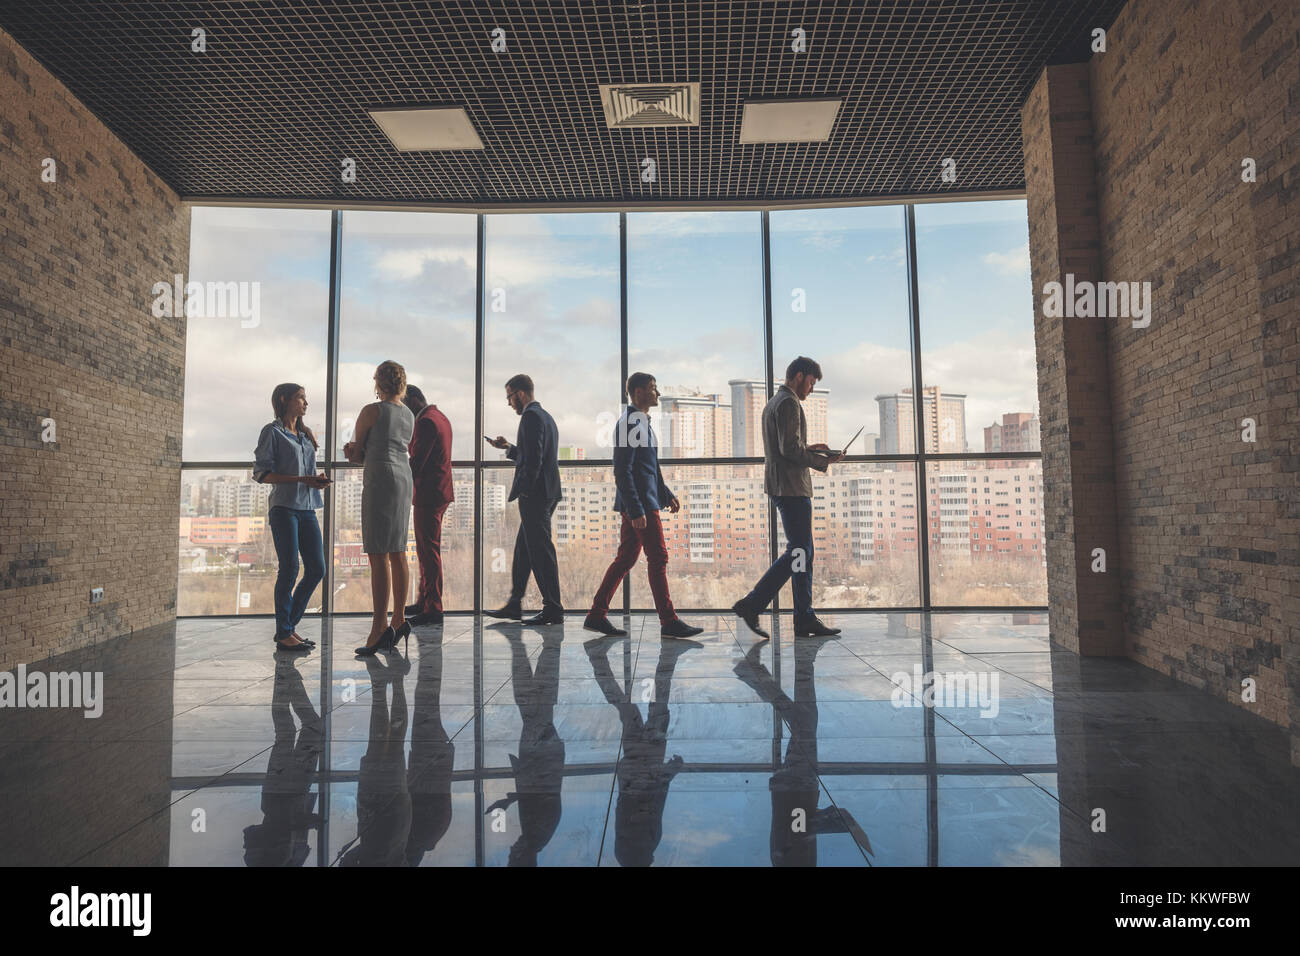 Silhouettes of business people in a conference room. - Stock Image